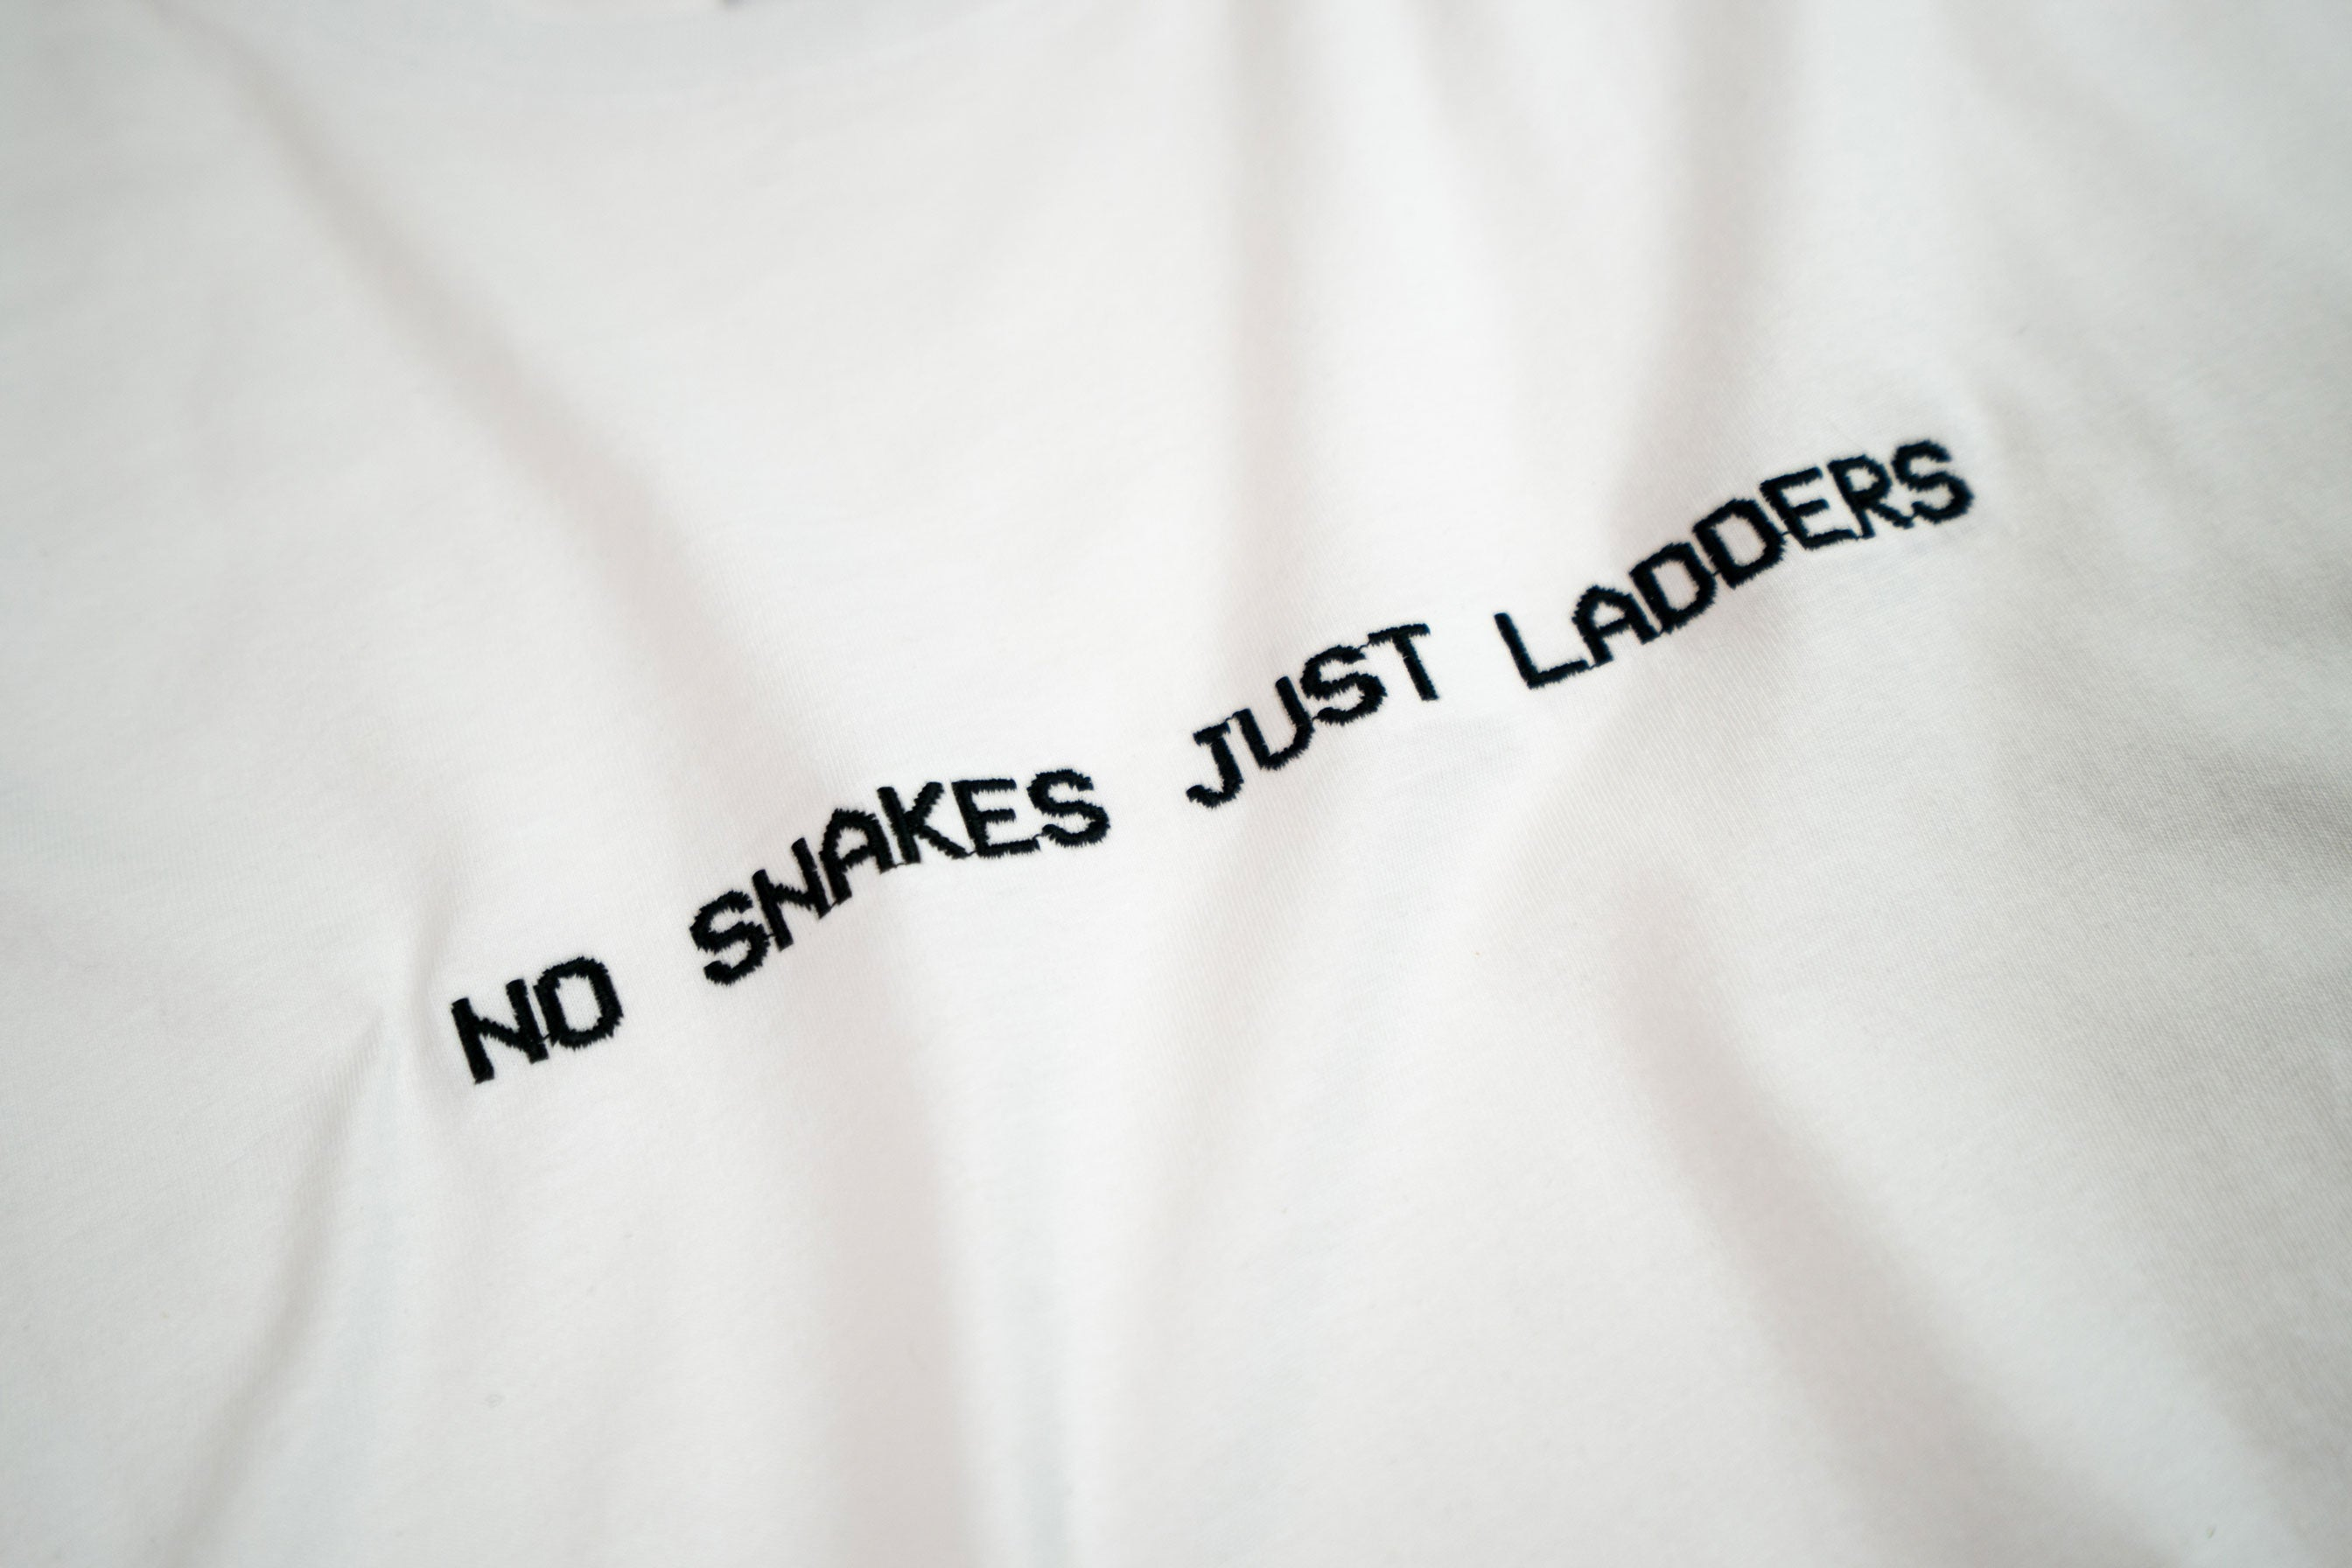 NO SNAKES JUST LADDERS // WHITE & BLACK